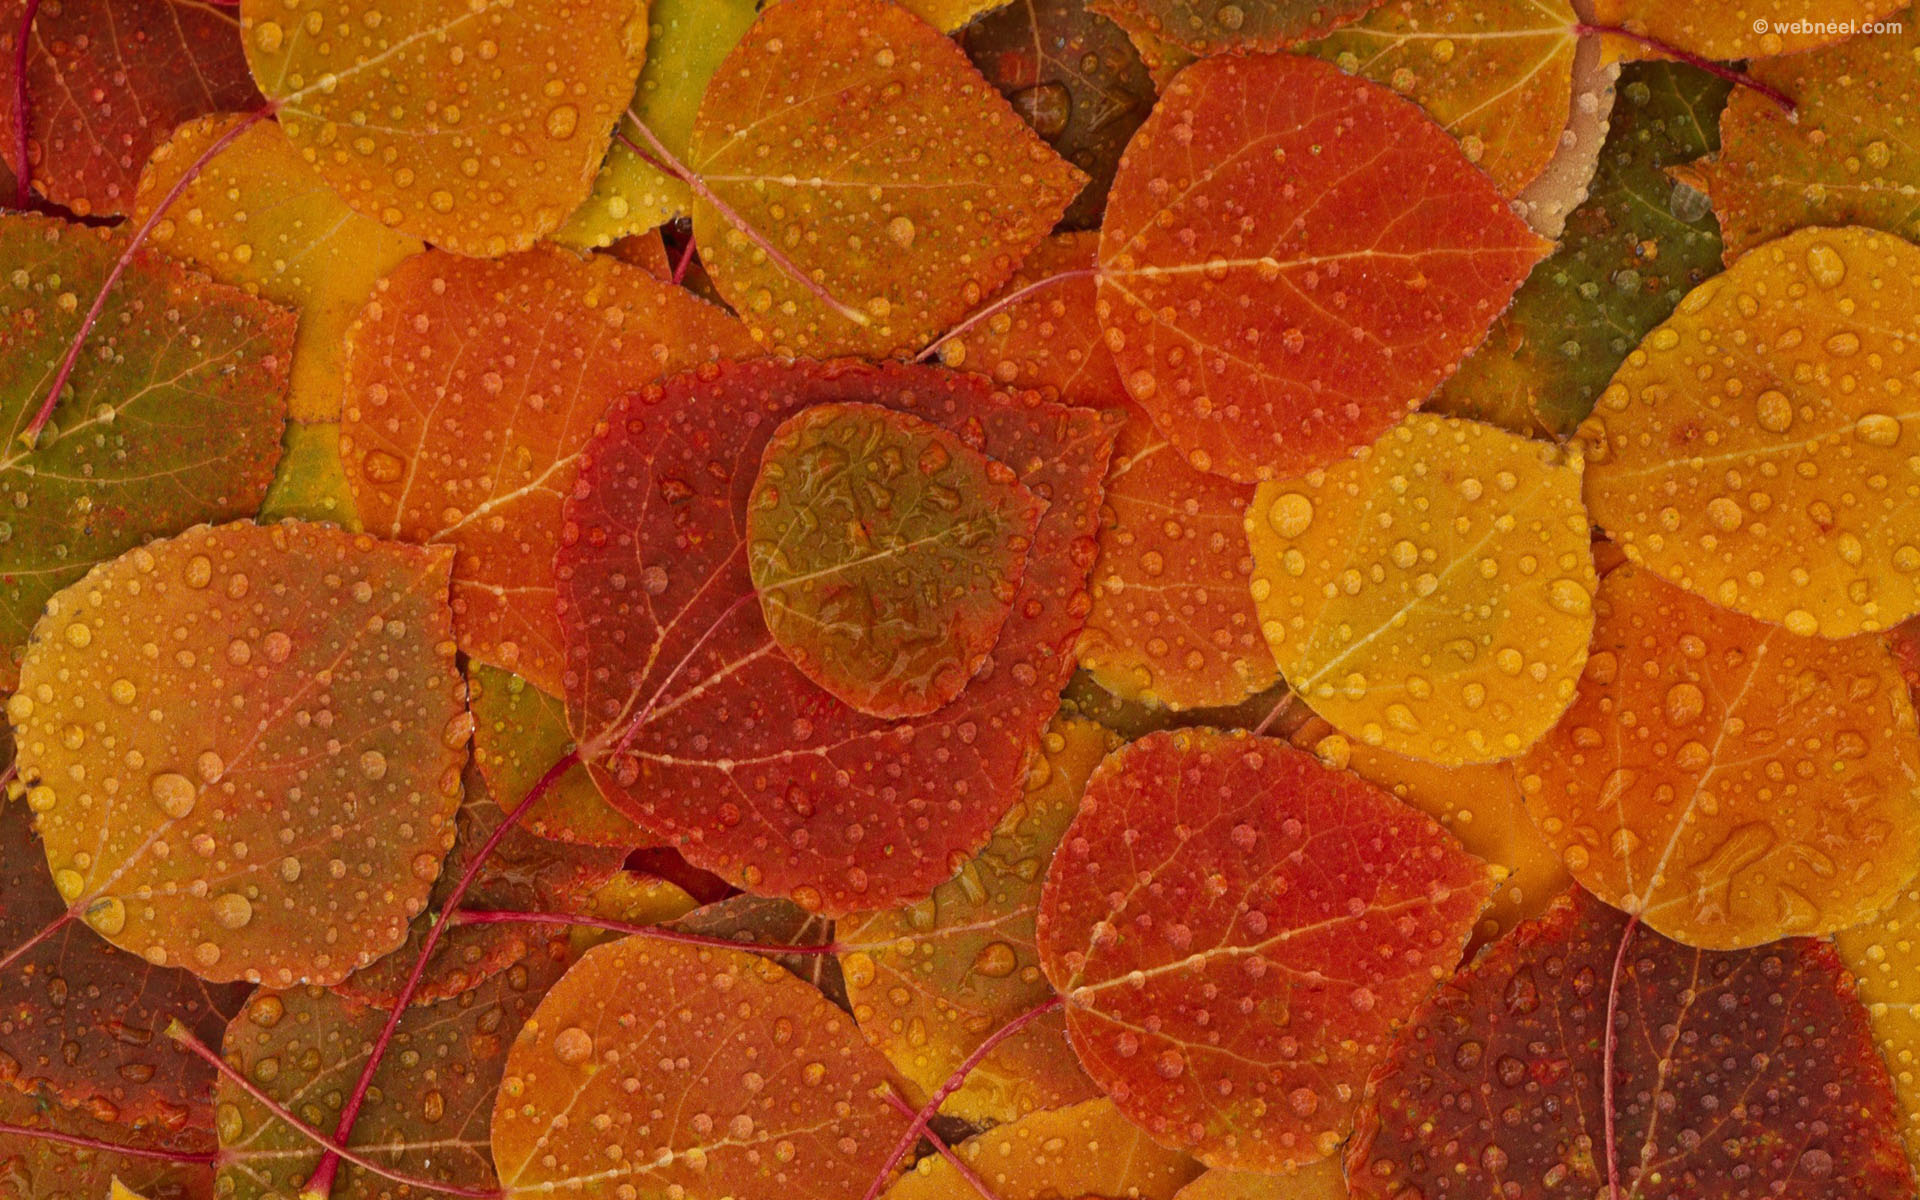 rain wallpaper leafs